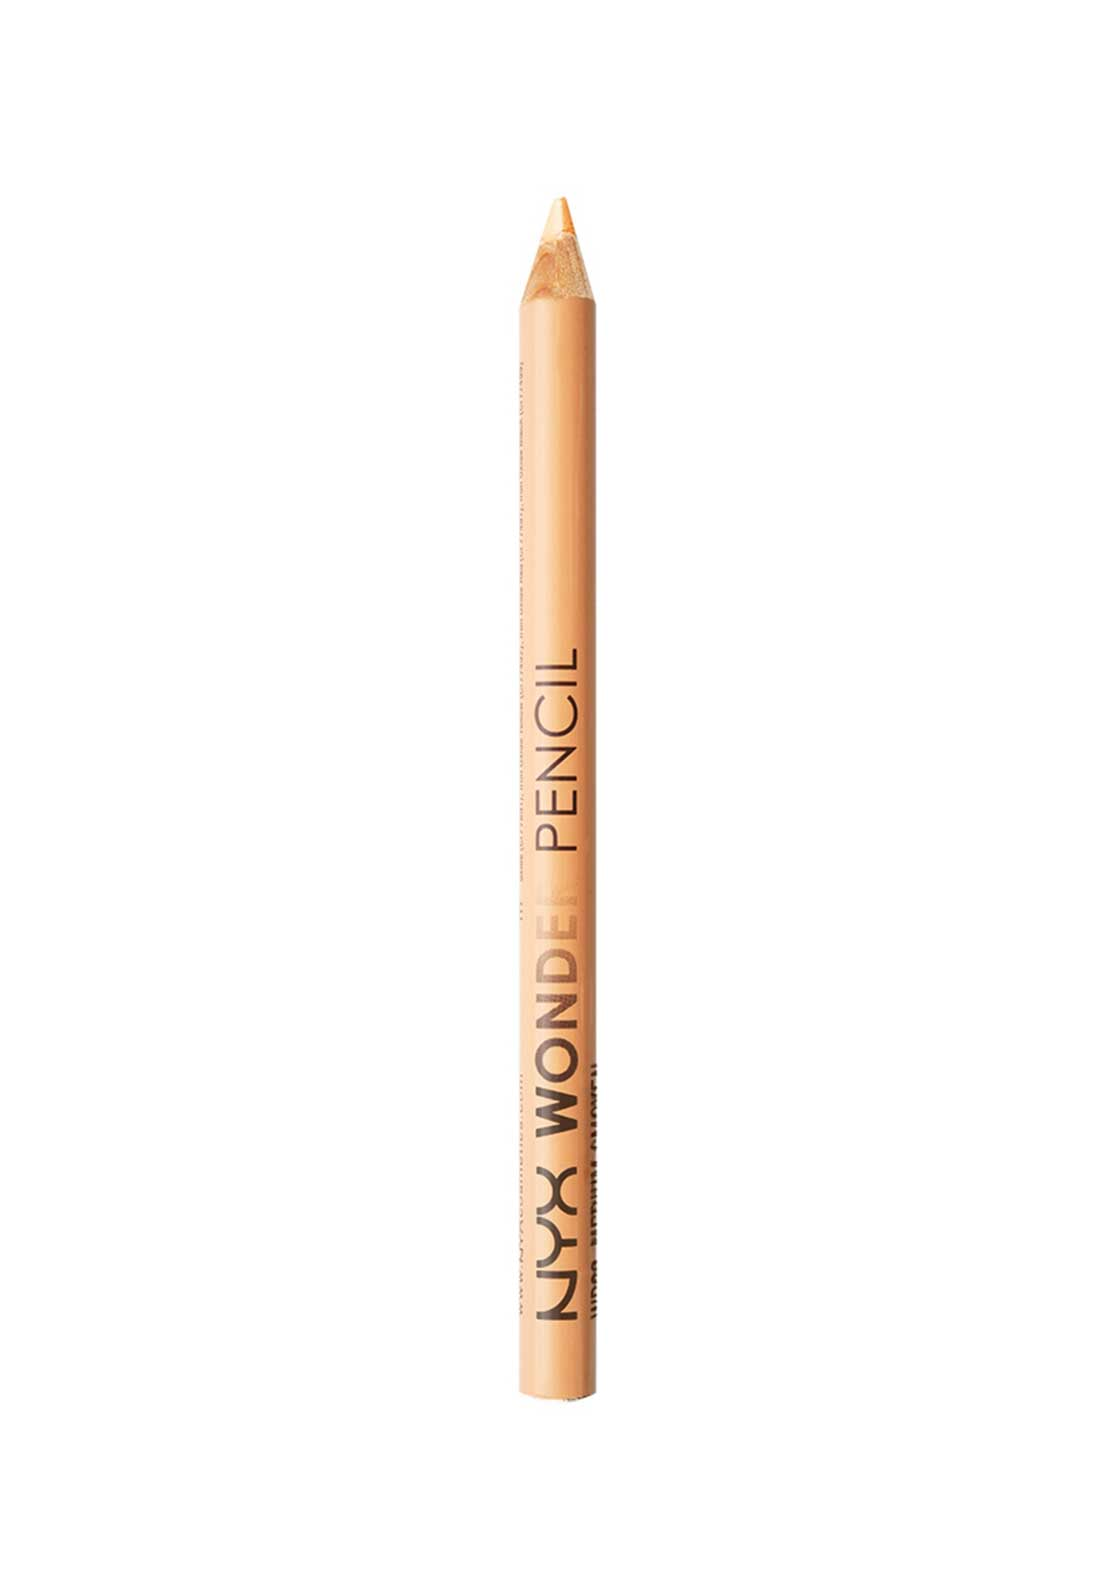 NYX Make Up Wonder Pencil, 01 Light